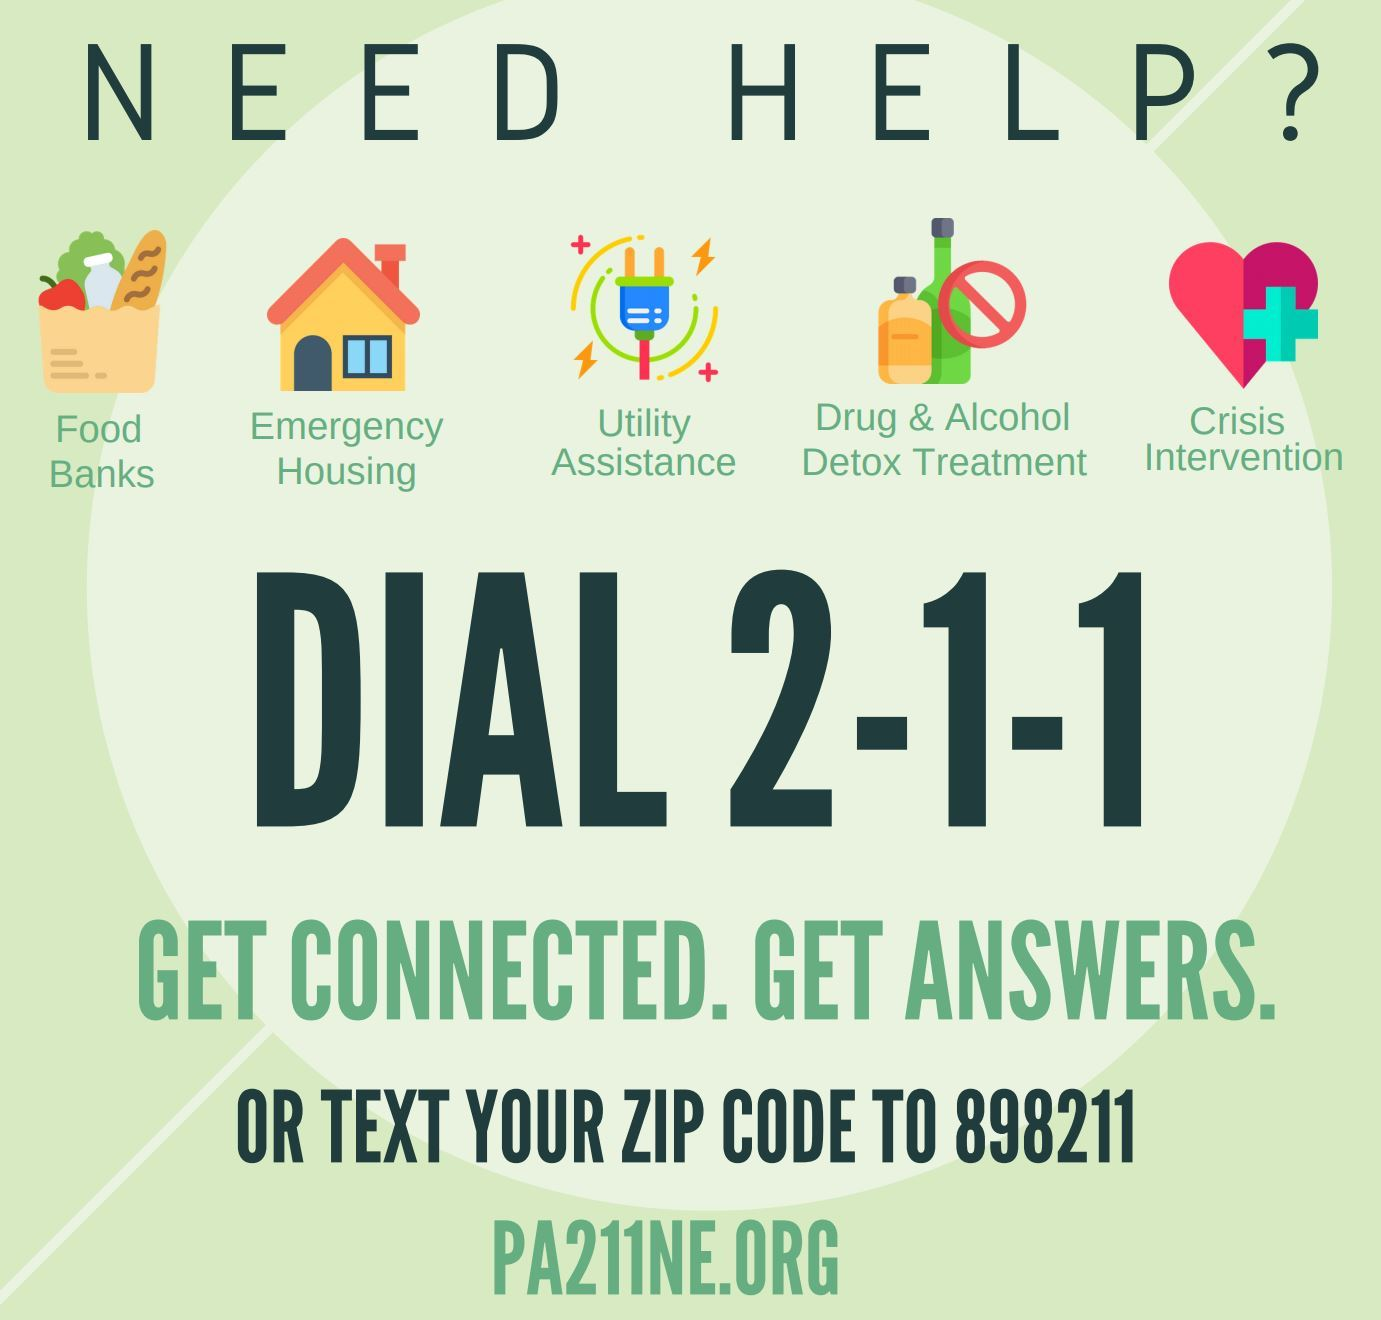 An image promoting the 211 Human Services Information & Referral line and website